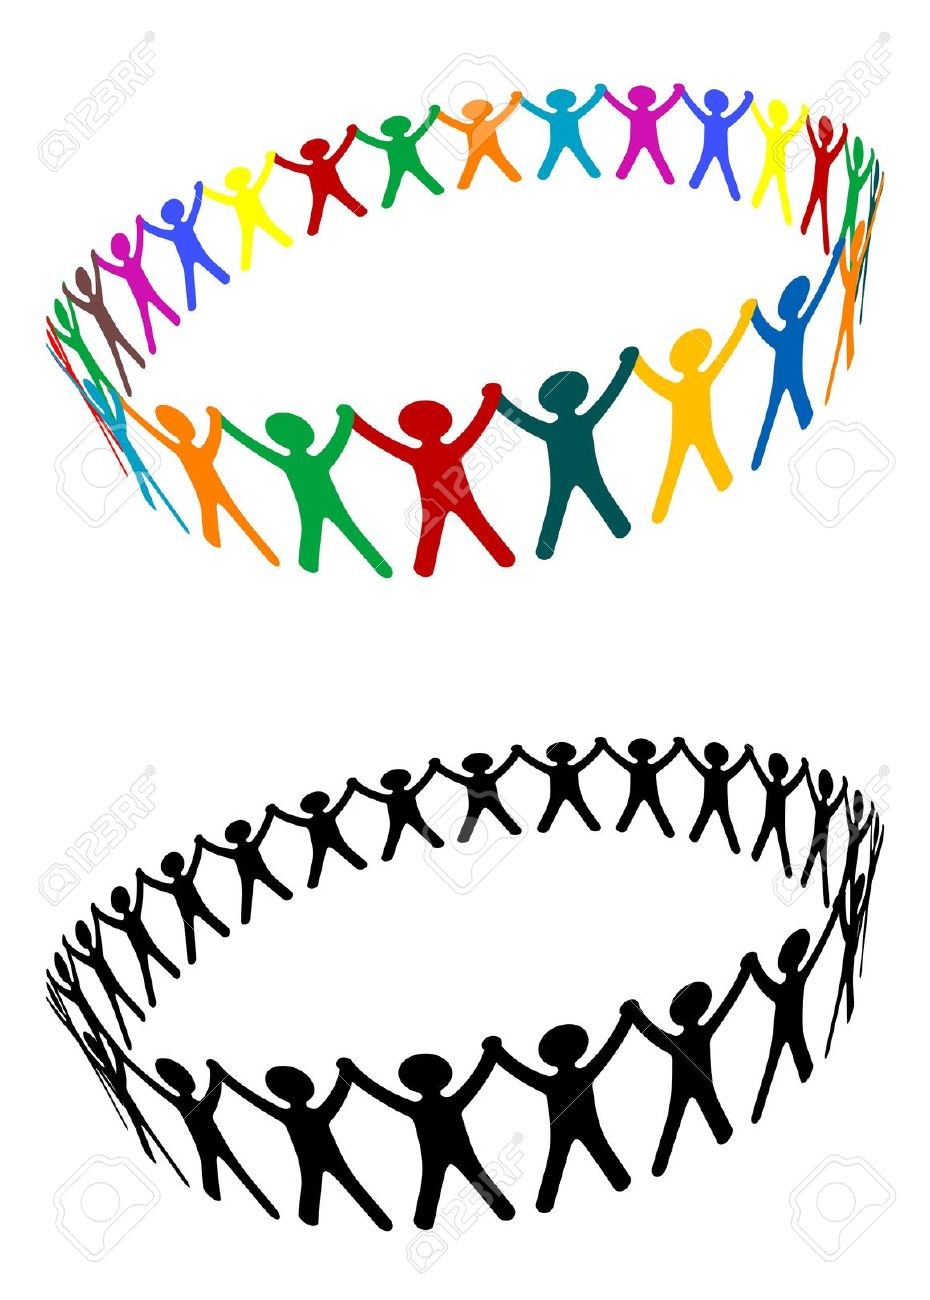 Round Of Peoples As A Friendship Symbol Royalty Free Cliparts.